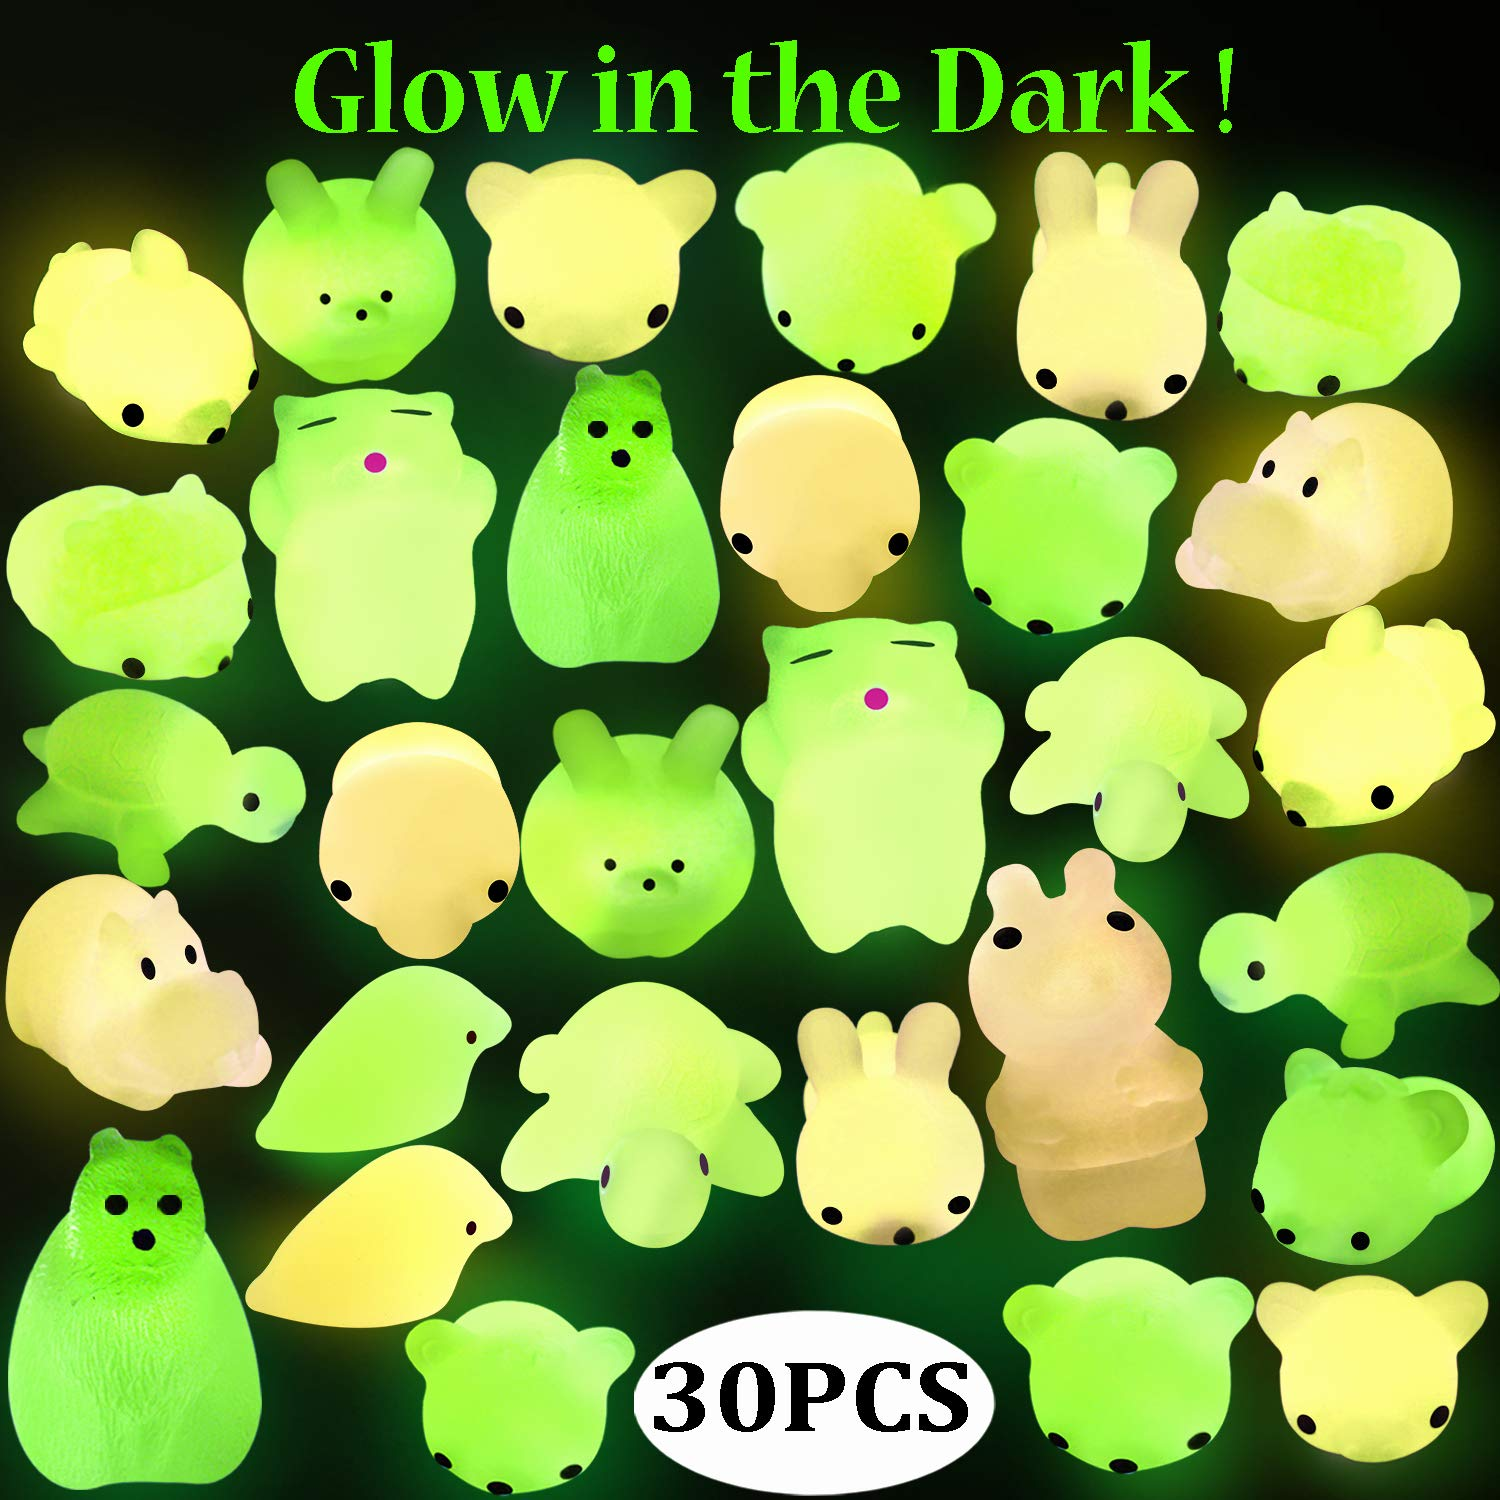 Outee Mochi Animals Stress Toys, 30 Pcs Mini Squishies Mochi Squishies Toys Mochi Cat Glow in The Dark Squishies Squeeze Relief Stress Toys for Kids Adults